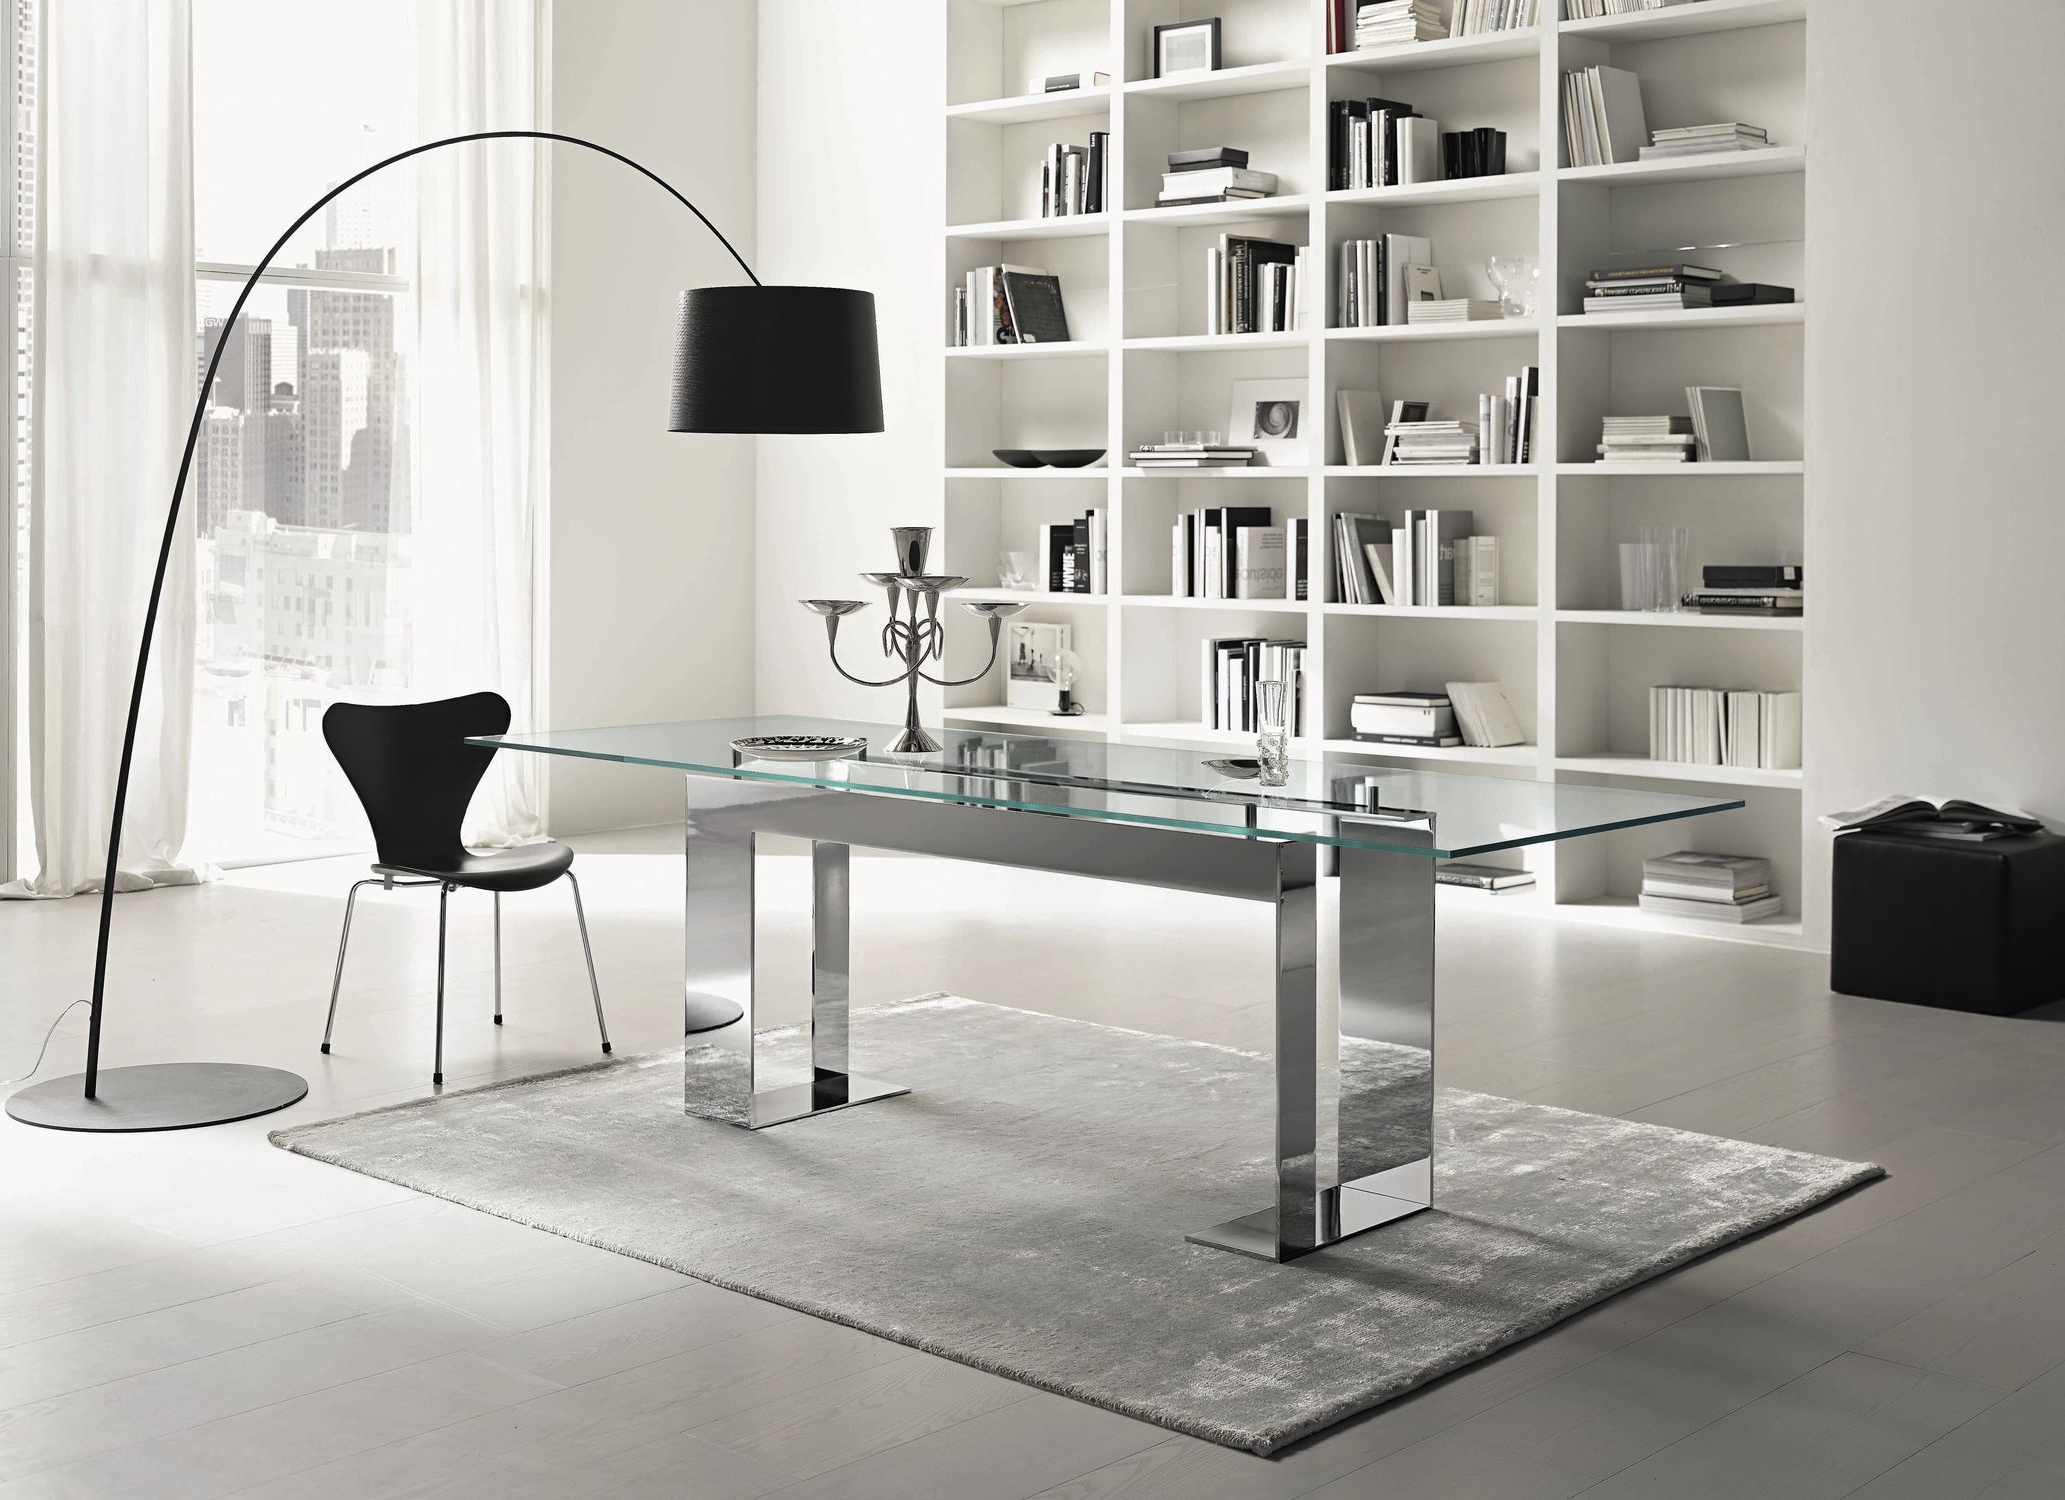 Newest Steel And Glass Rectangle Dining Tables With Contemporary Table / Chromed Metal / Chromed Metal Base (Gallery 8 of 30)